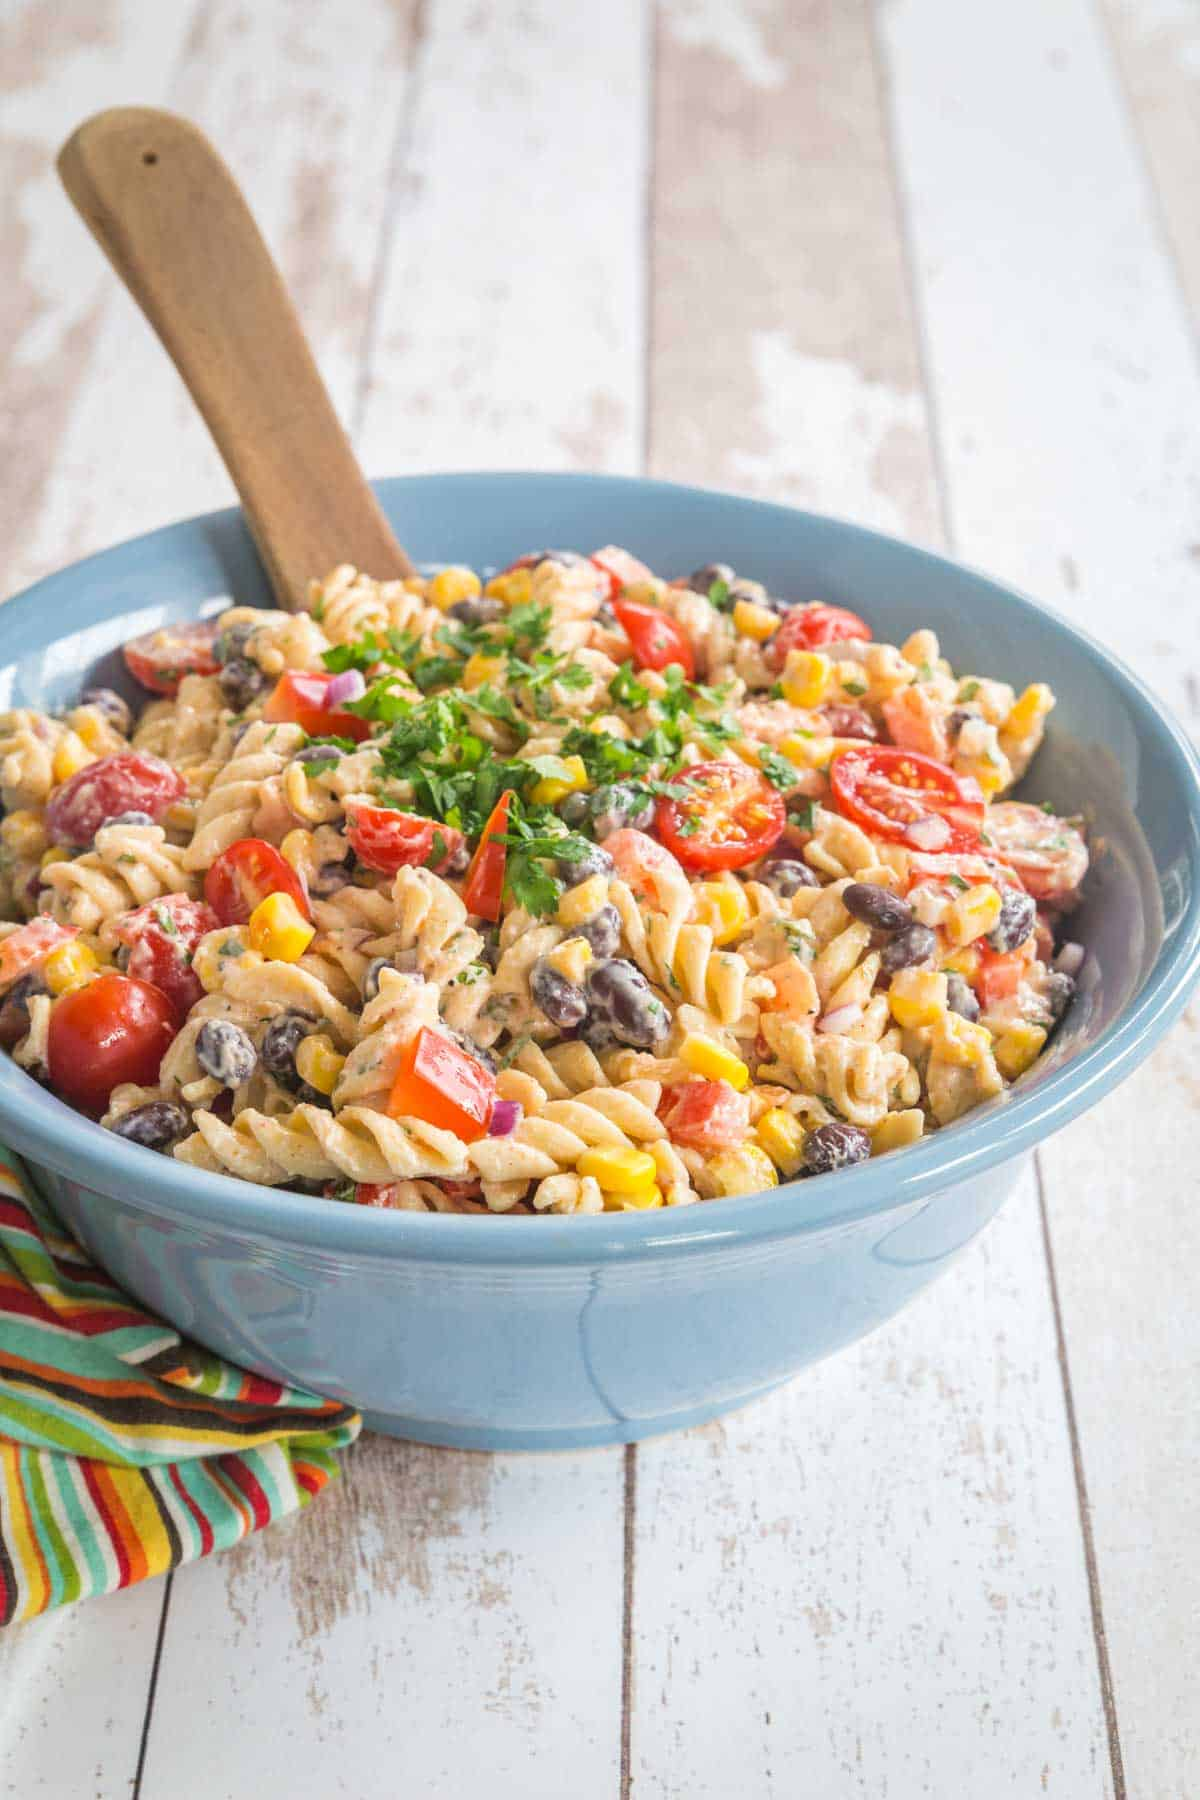 creamy southwestern pasta salad in a blue serving bowl on top of a multicolored striped napkin